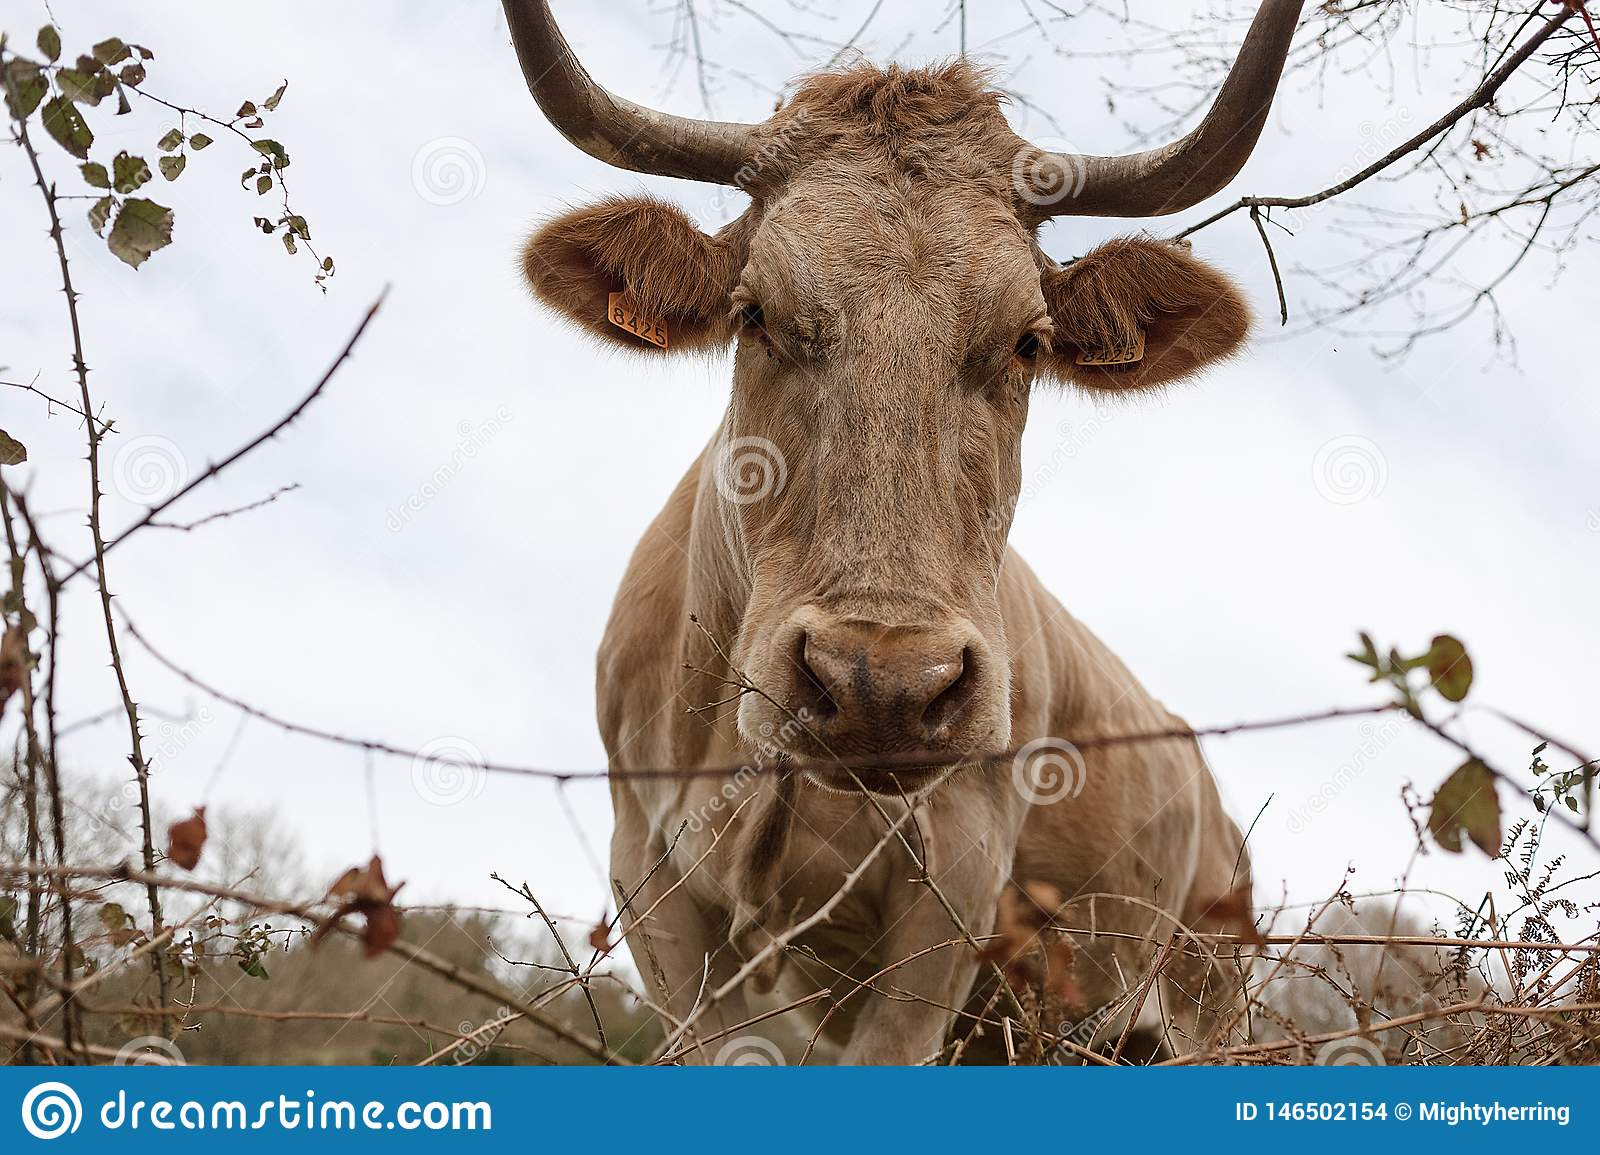 Closeup of a brown cow with a number on its ear grazing in a meadow in spring. Agriculture, breeding cattle concept